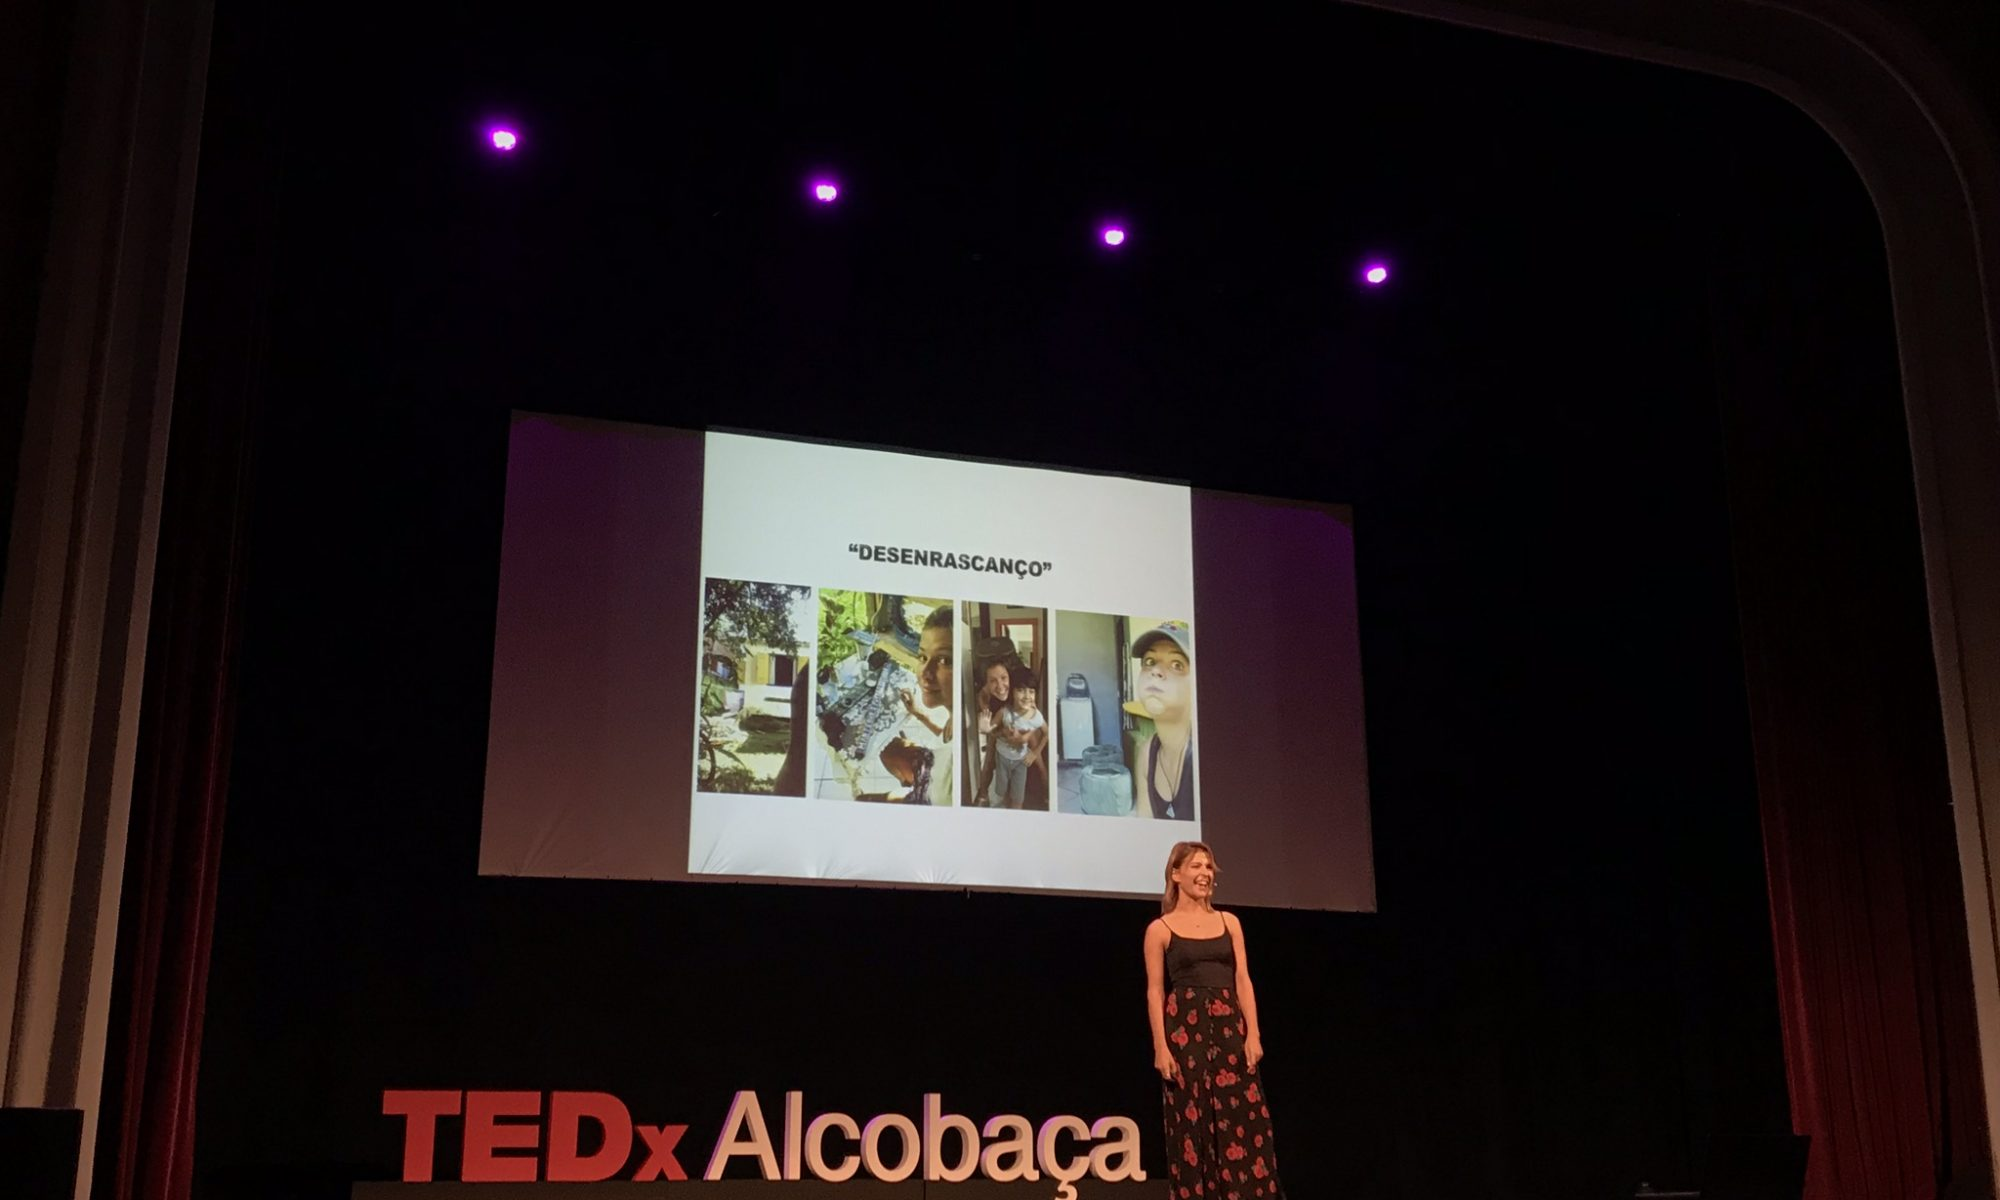 diana-nicolau-tedx-alcobaça-til-magazine-your-move